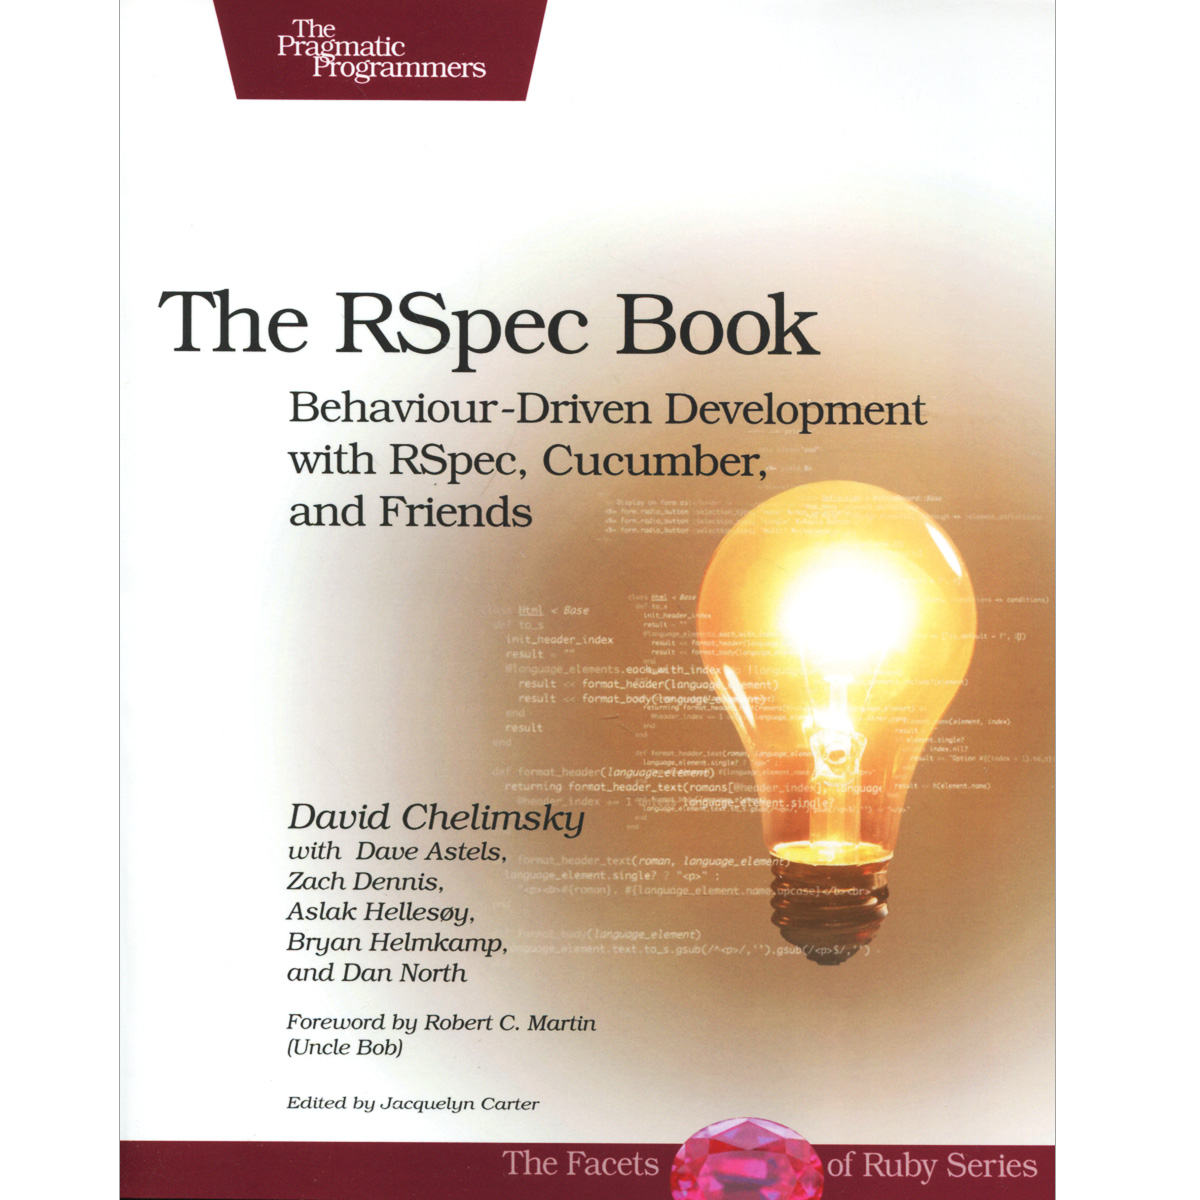 The RSpec Book: Behaviour-Driven Development with Rspec, Cucumber, and Friends driven to distraction